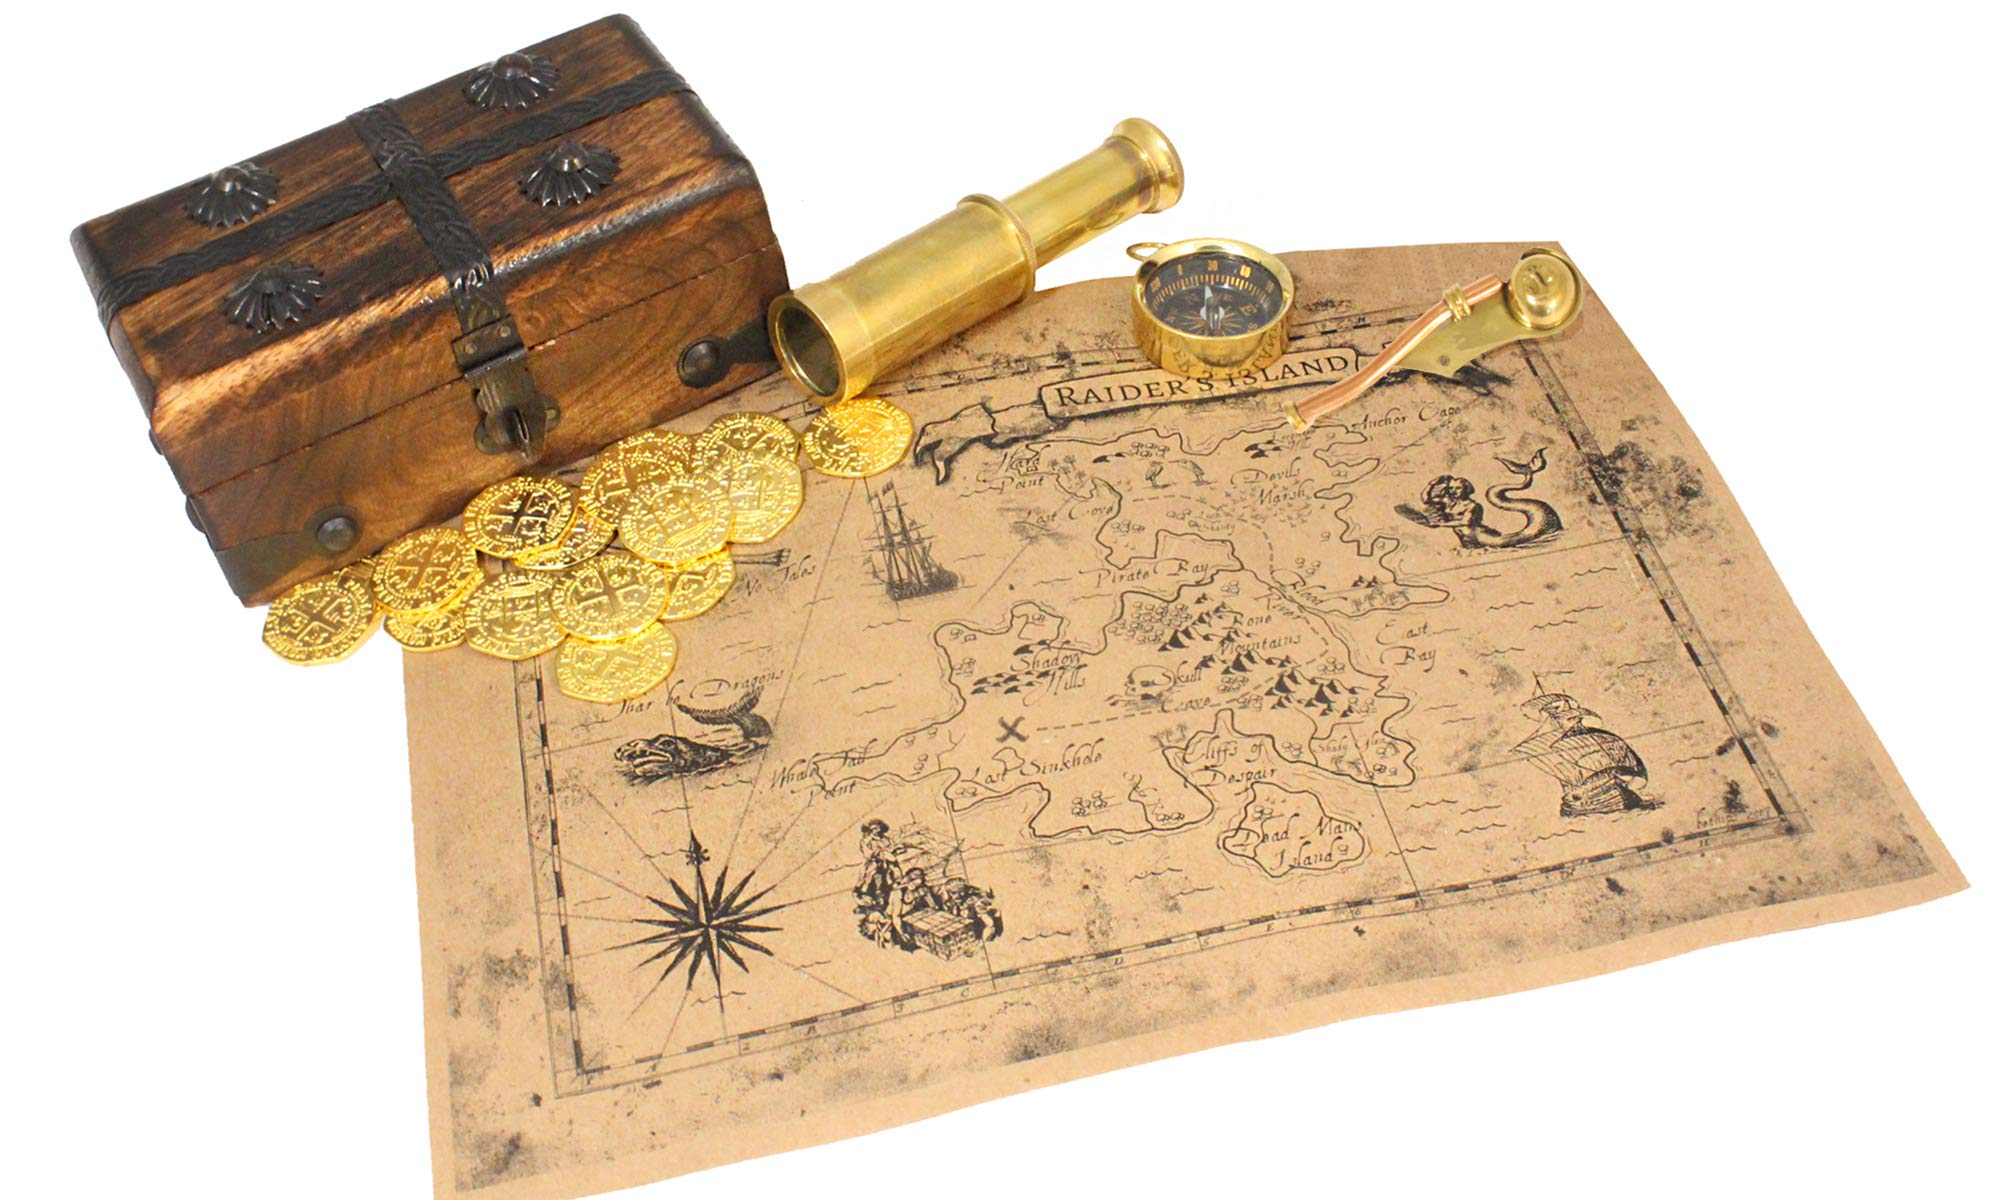 Pirate Treasure Chest Solid Wood With Telescope Spyglass Brass Functional Compass, Bosun Whistle, Metal Coins, Treasure Map Hunt By Well Pack Box, by Well Pack Box